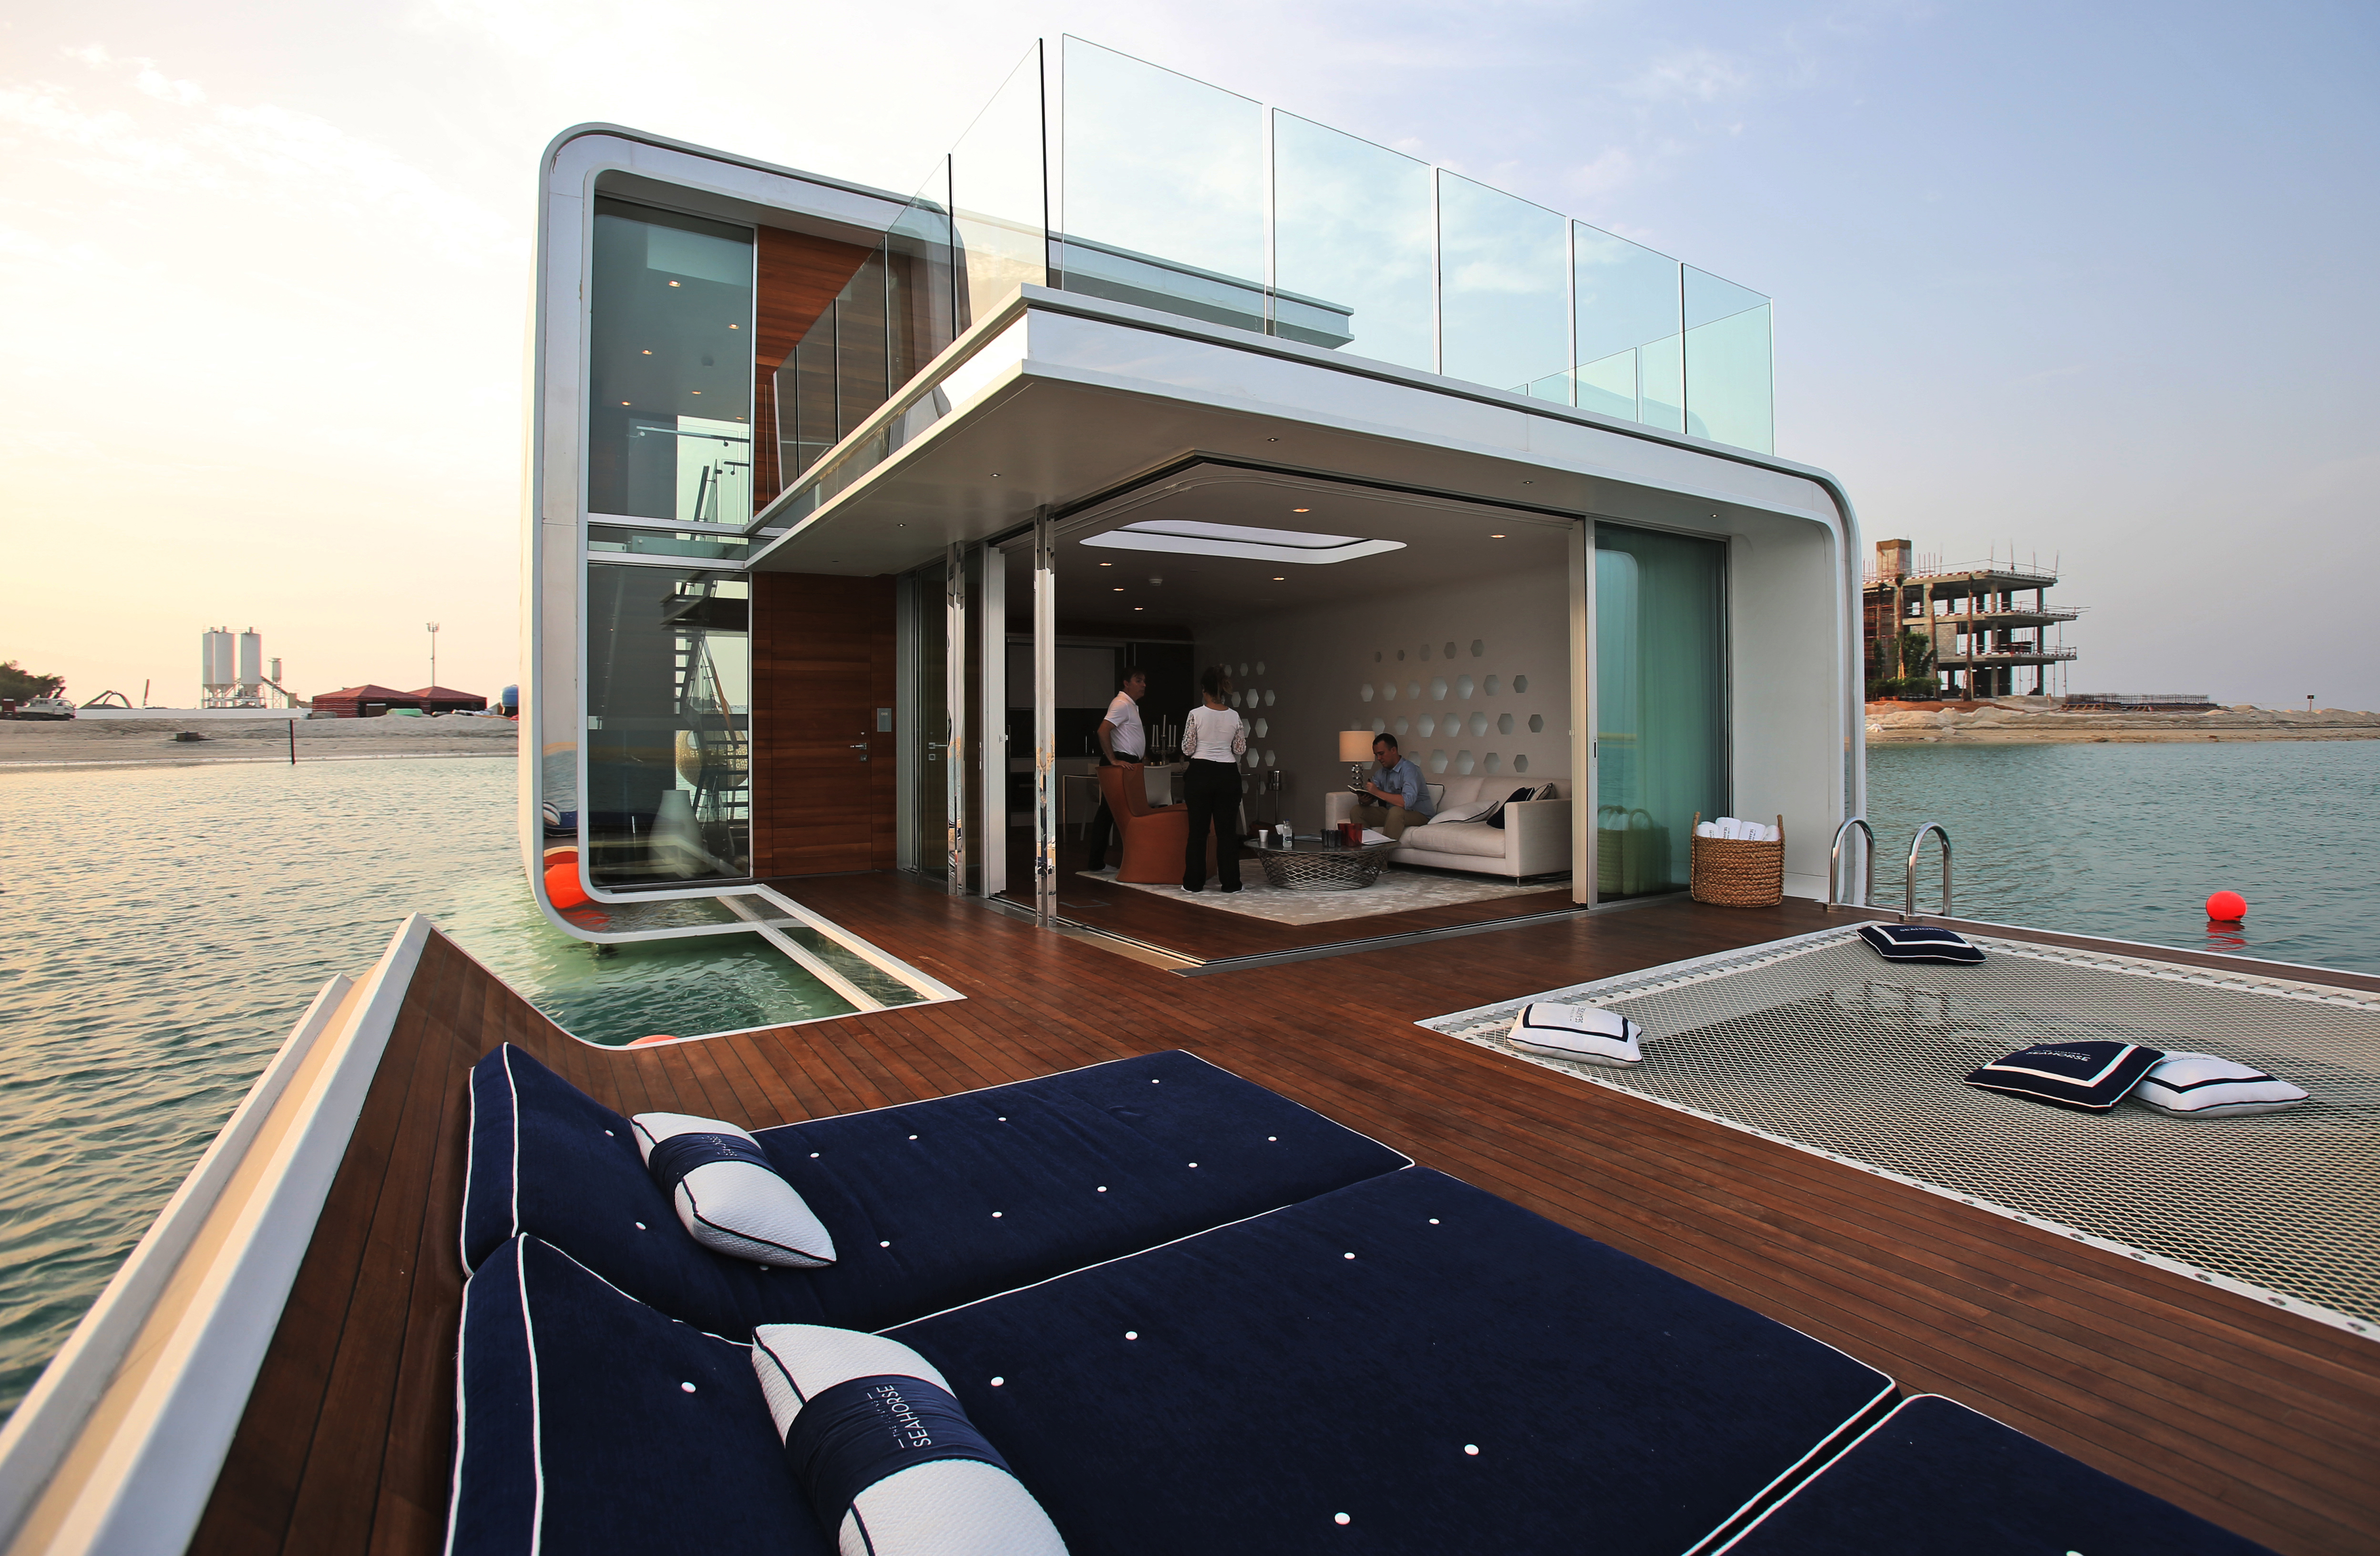 uae's first 'floating home' arrives on dubai canal